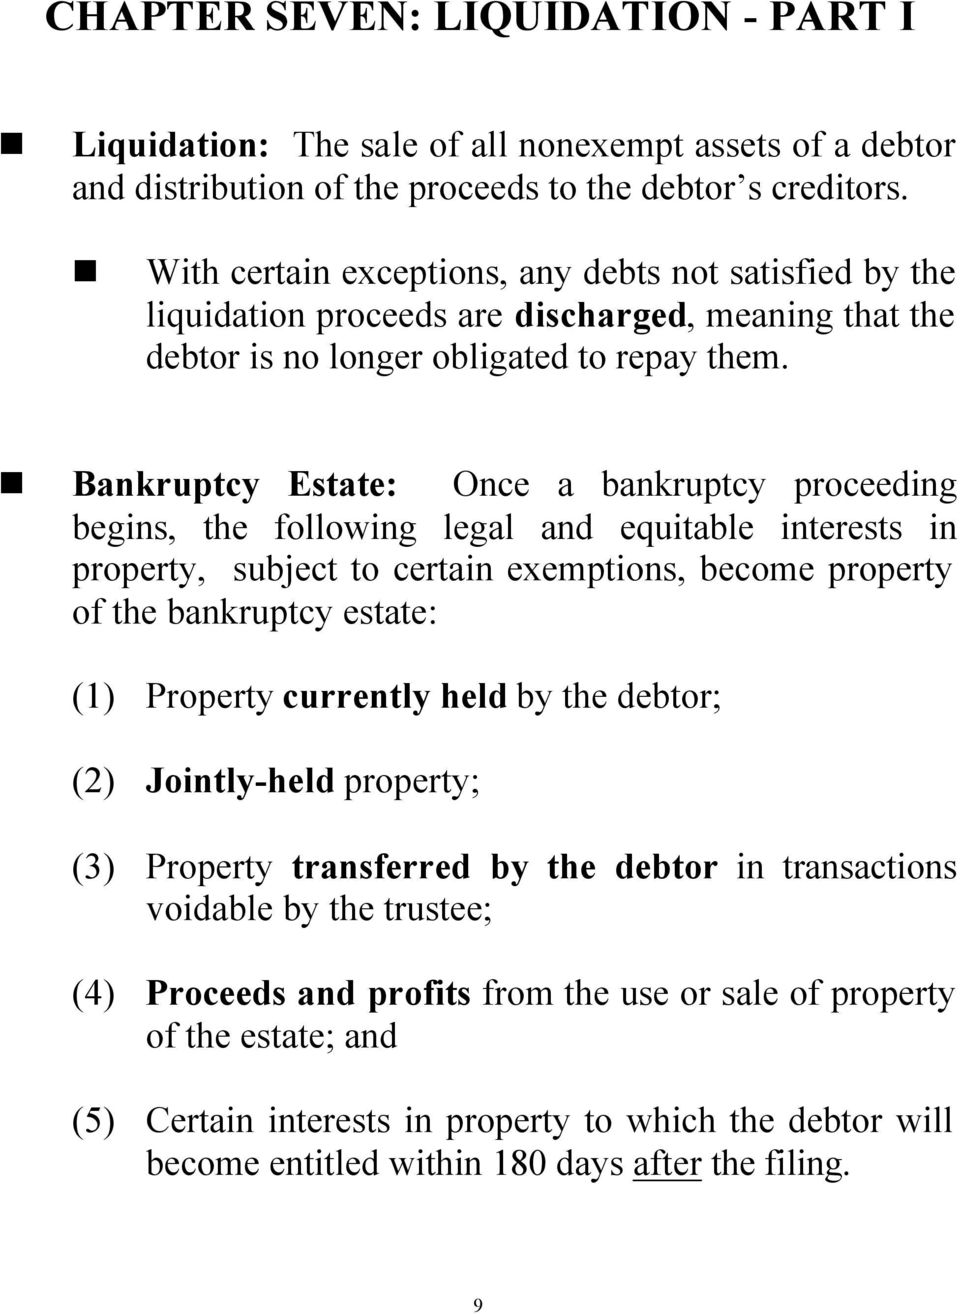 Bankruptcy Estate: Once a bankruptcy proceeding begins, the following legal and equitable interests in property, subject to certain exemptions, become property of the bankruptcy estate: (1) Property